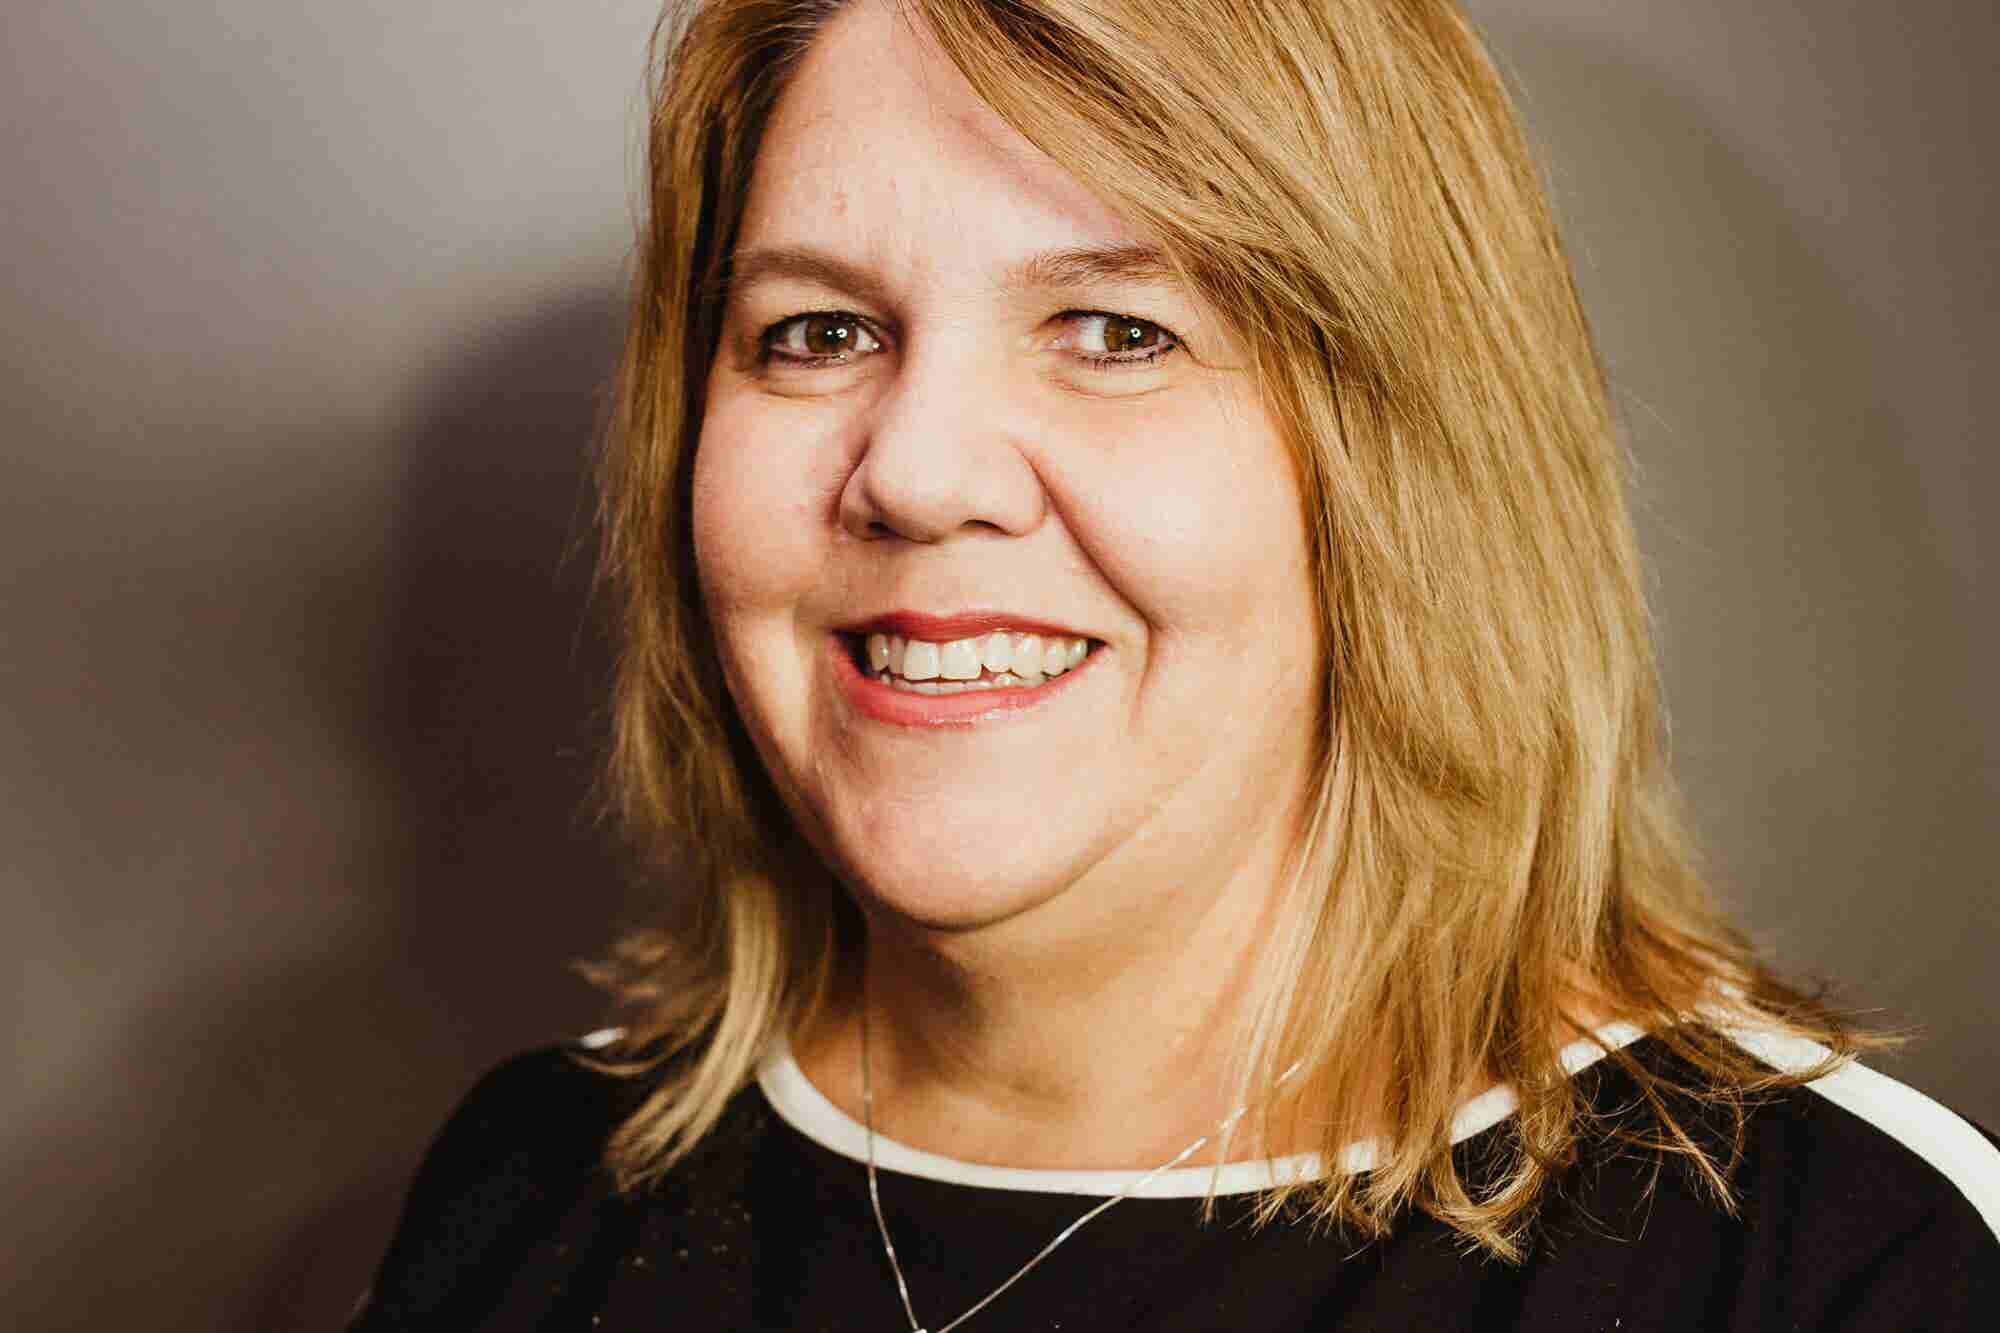 How This HR Technology Executive Became a Champion for Disadvantaged Teens Through Her Disruptive Actions